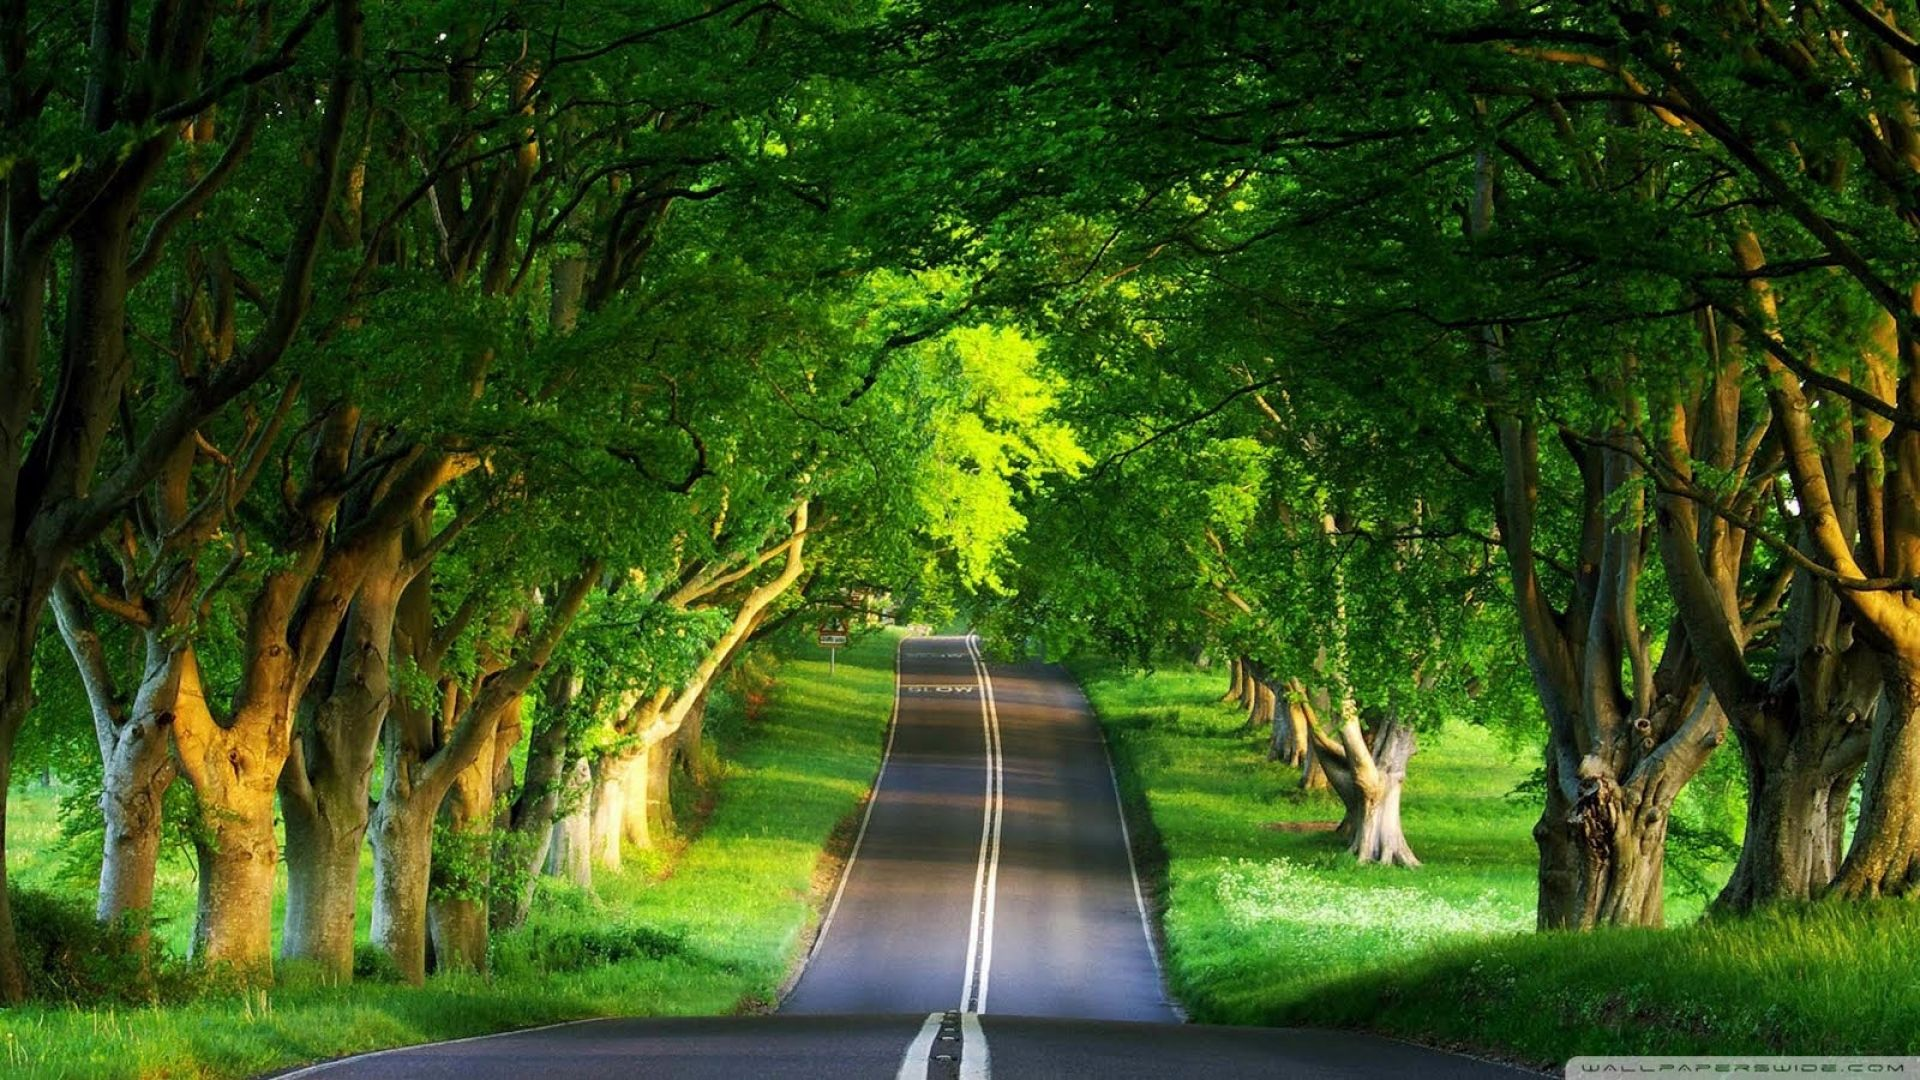 Hd wallpaper beautiful - Green Nature Wallpapers Hd Pictures One Hd Wallpaper Pictures